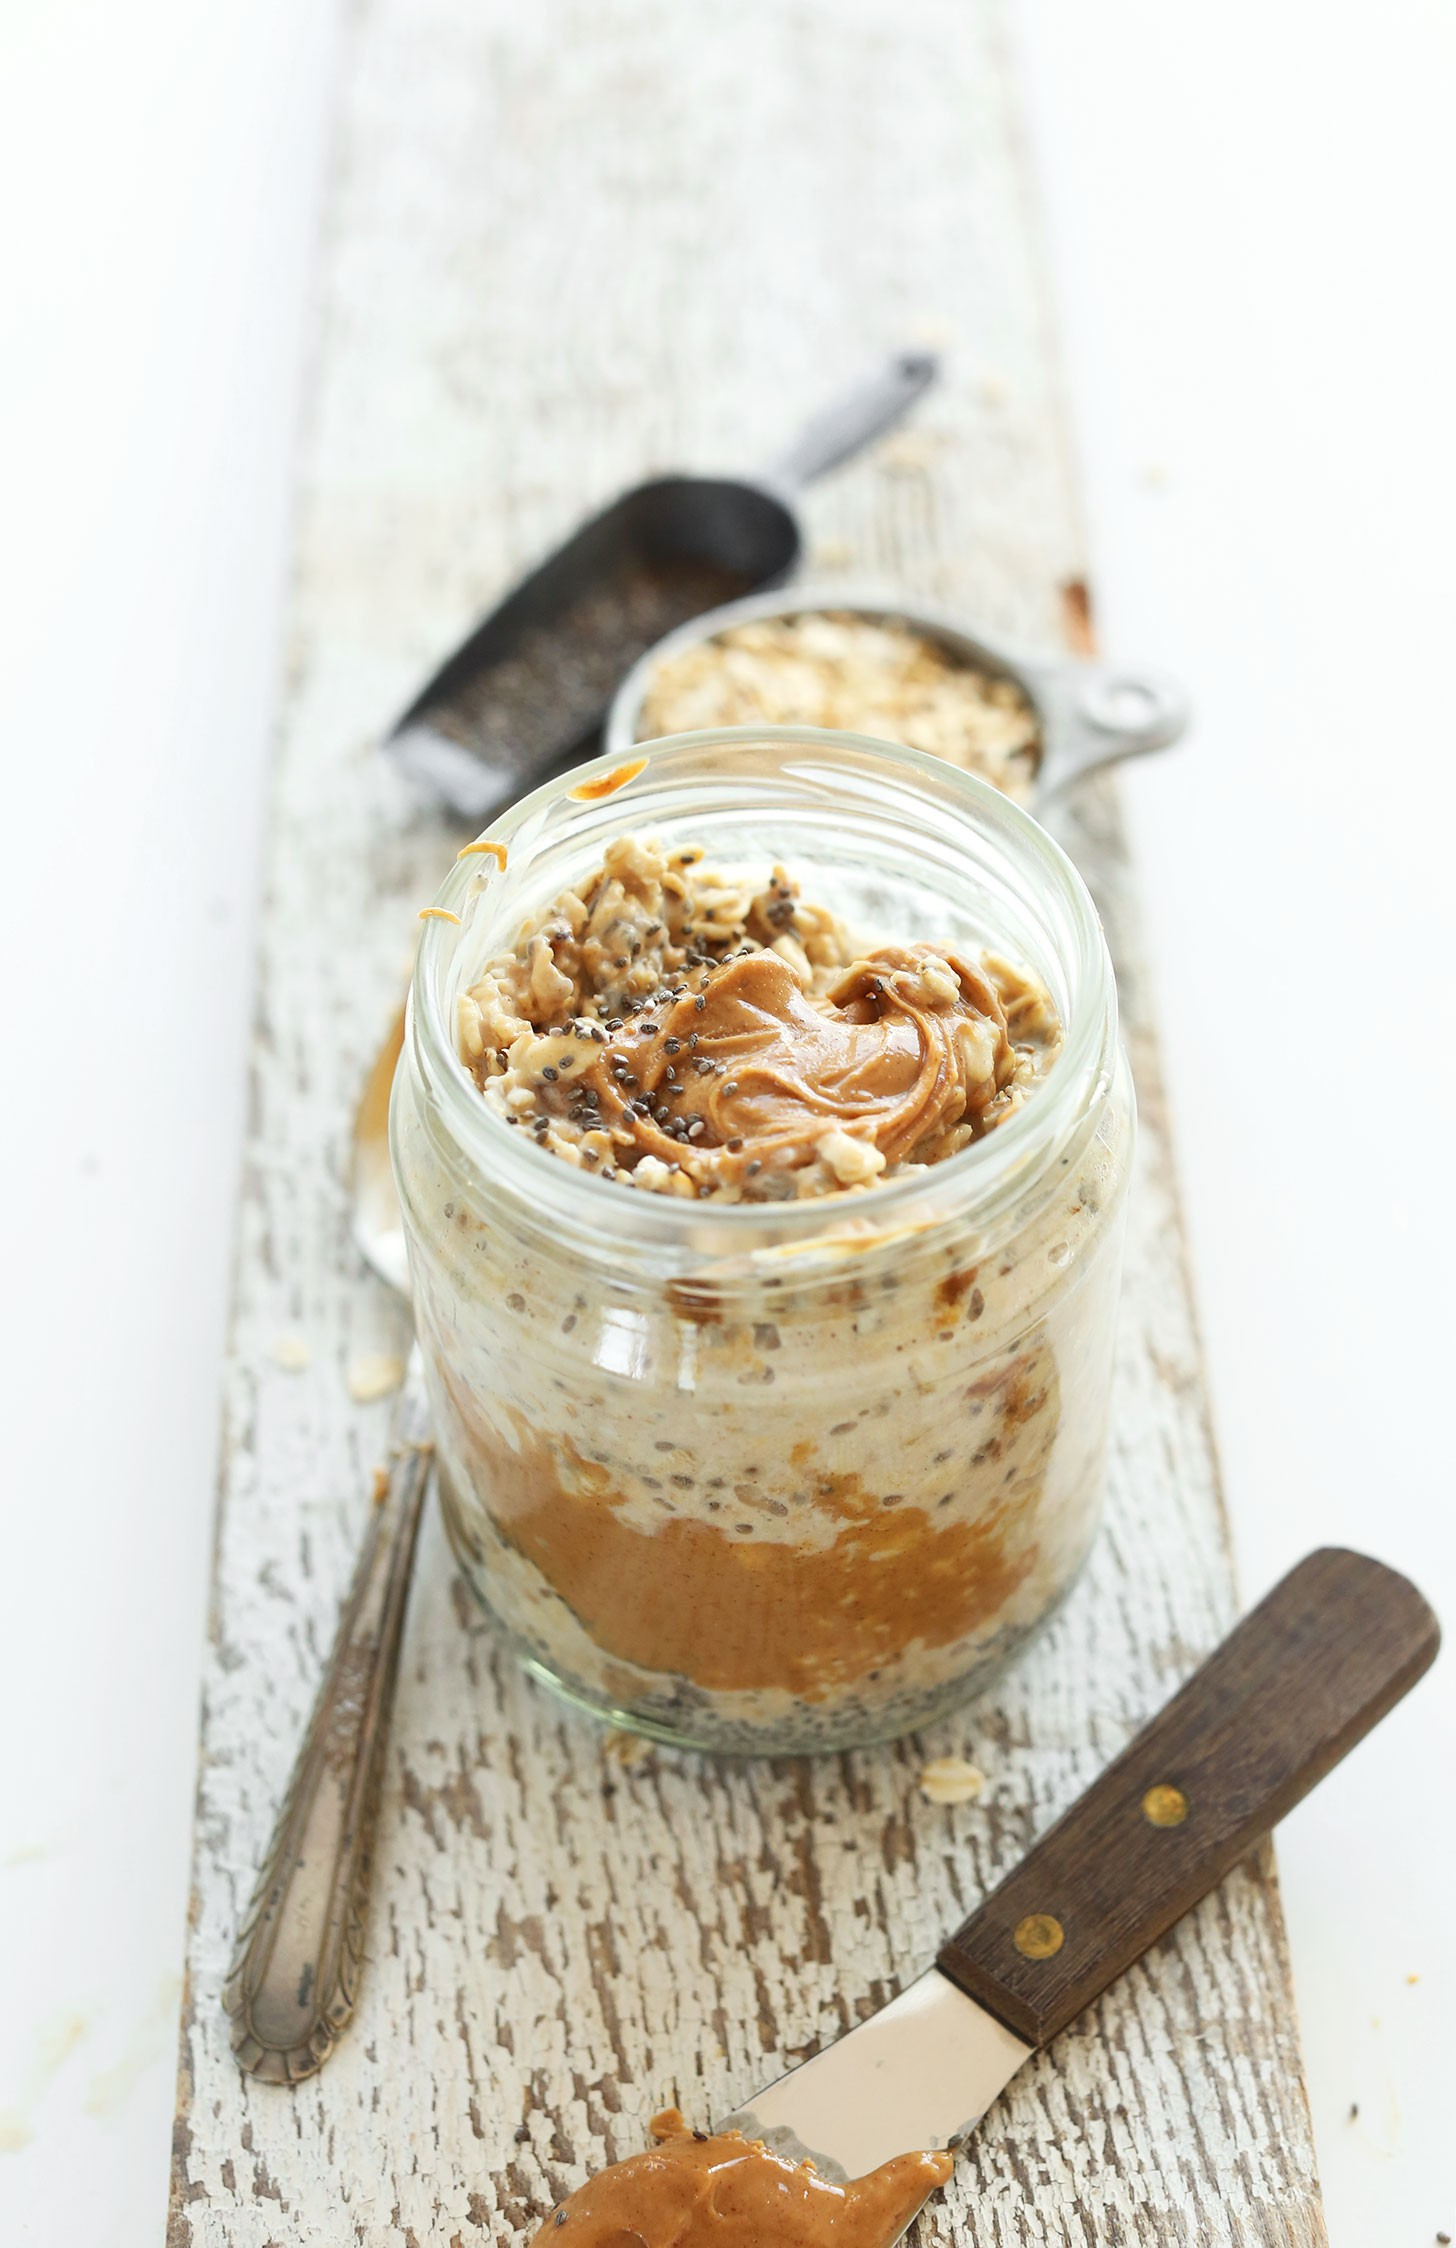 SIMPLE-AMAZING-Peanut-Butter-Overnight-Oats-Just-5-ingredients-5-minutes-prep-and-SO-delicious-vegan-recipe-glutenfree-meal-breakfast-oats-oatmeal.jpg